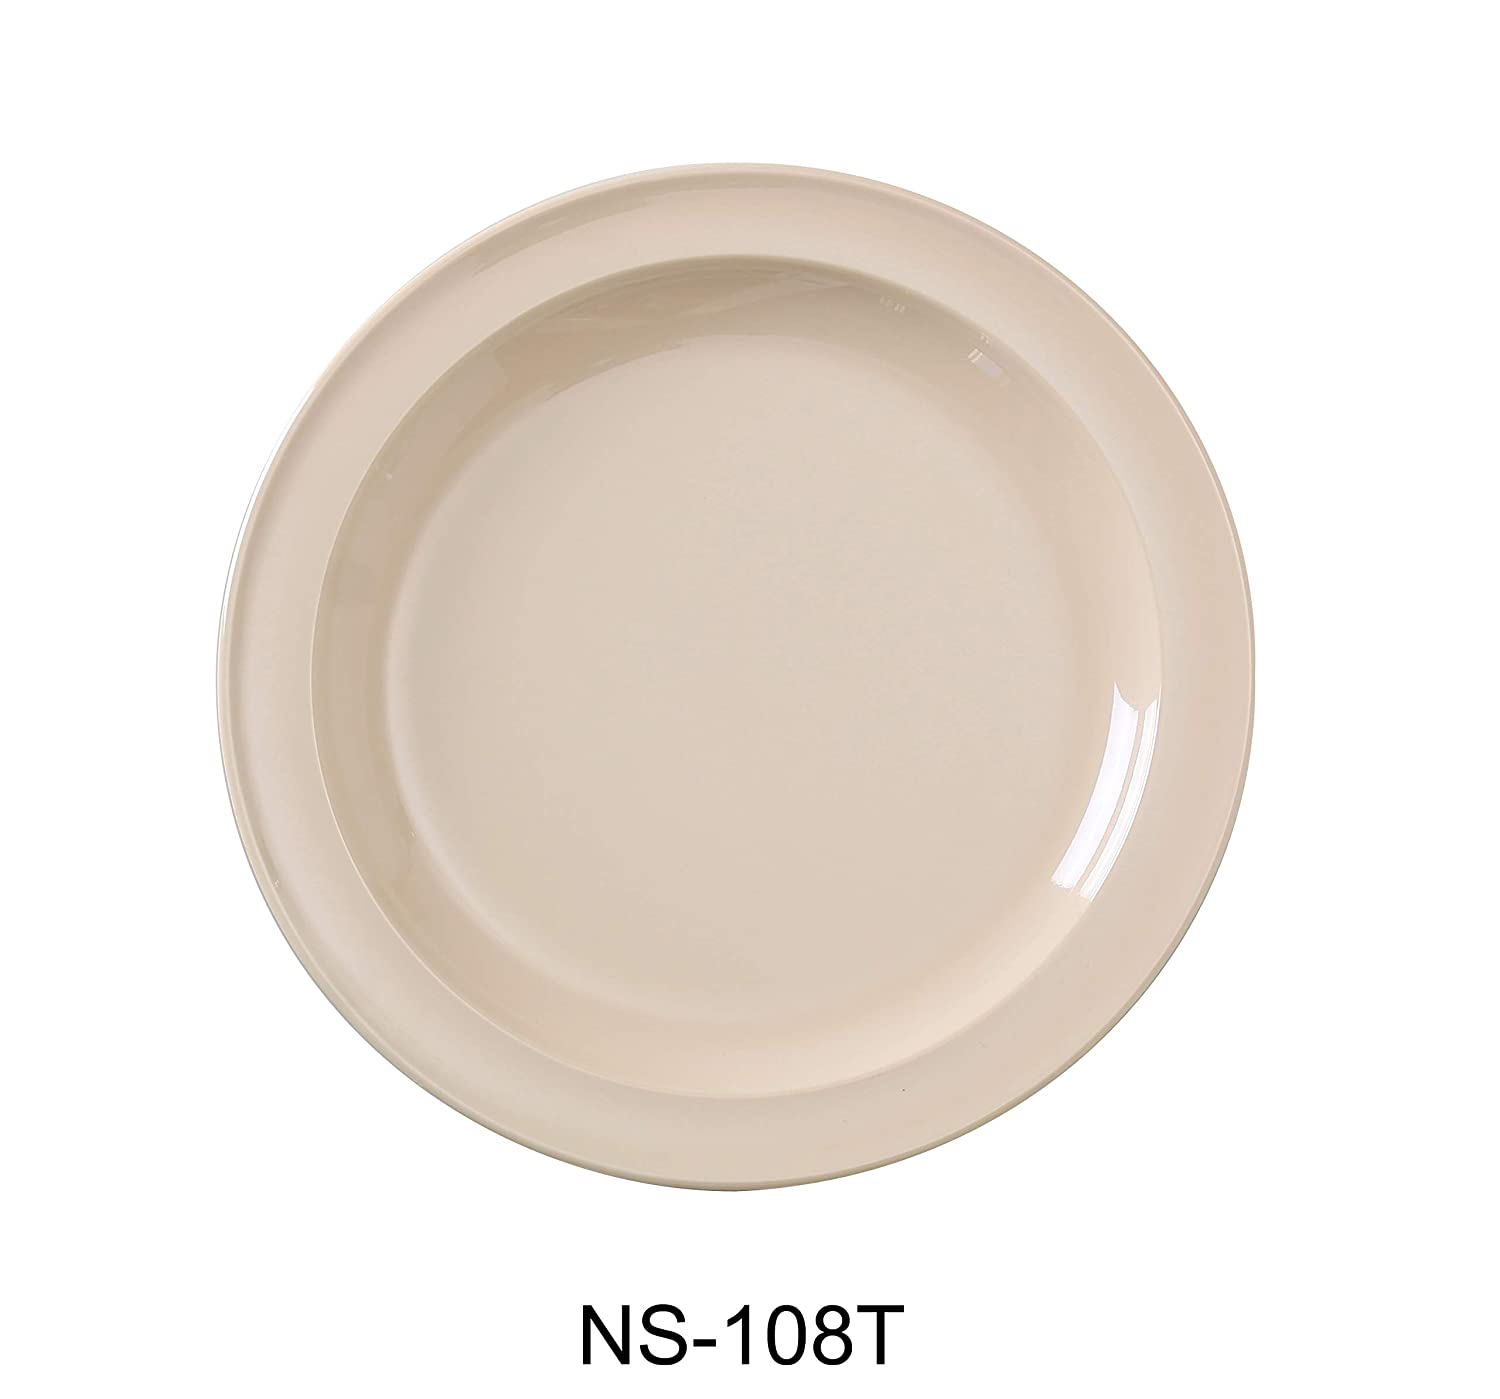 Yanco NS-108T Nessico Round Dinner Max 90% OFF Plate Large-scale sale Melamine 8